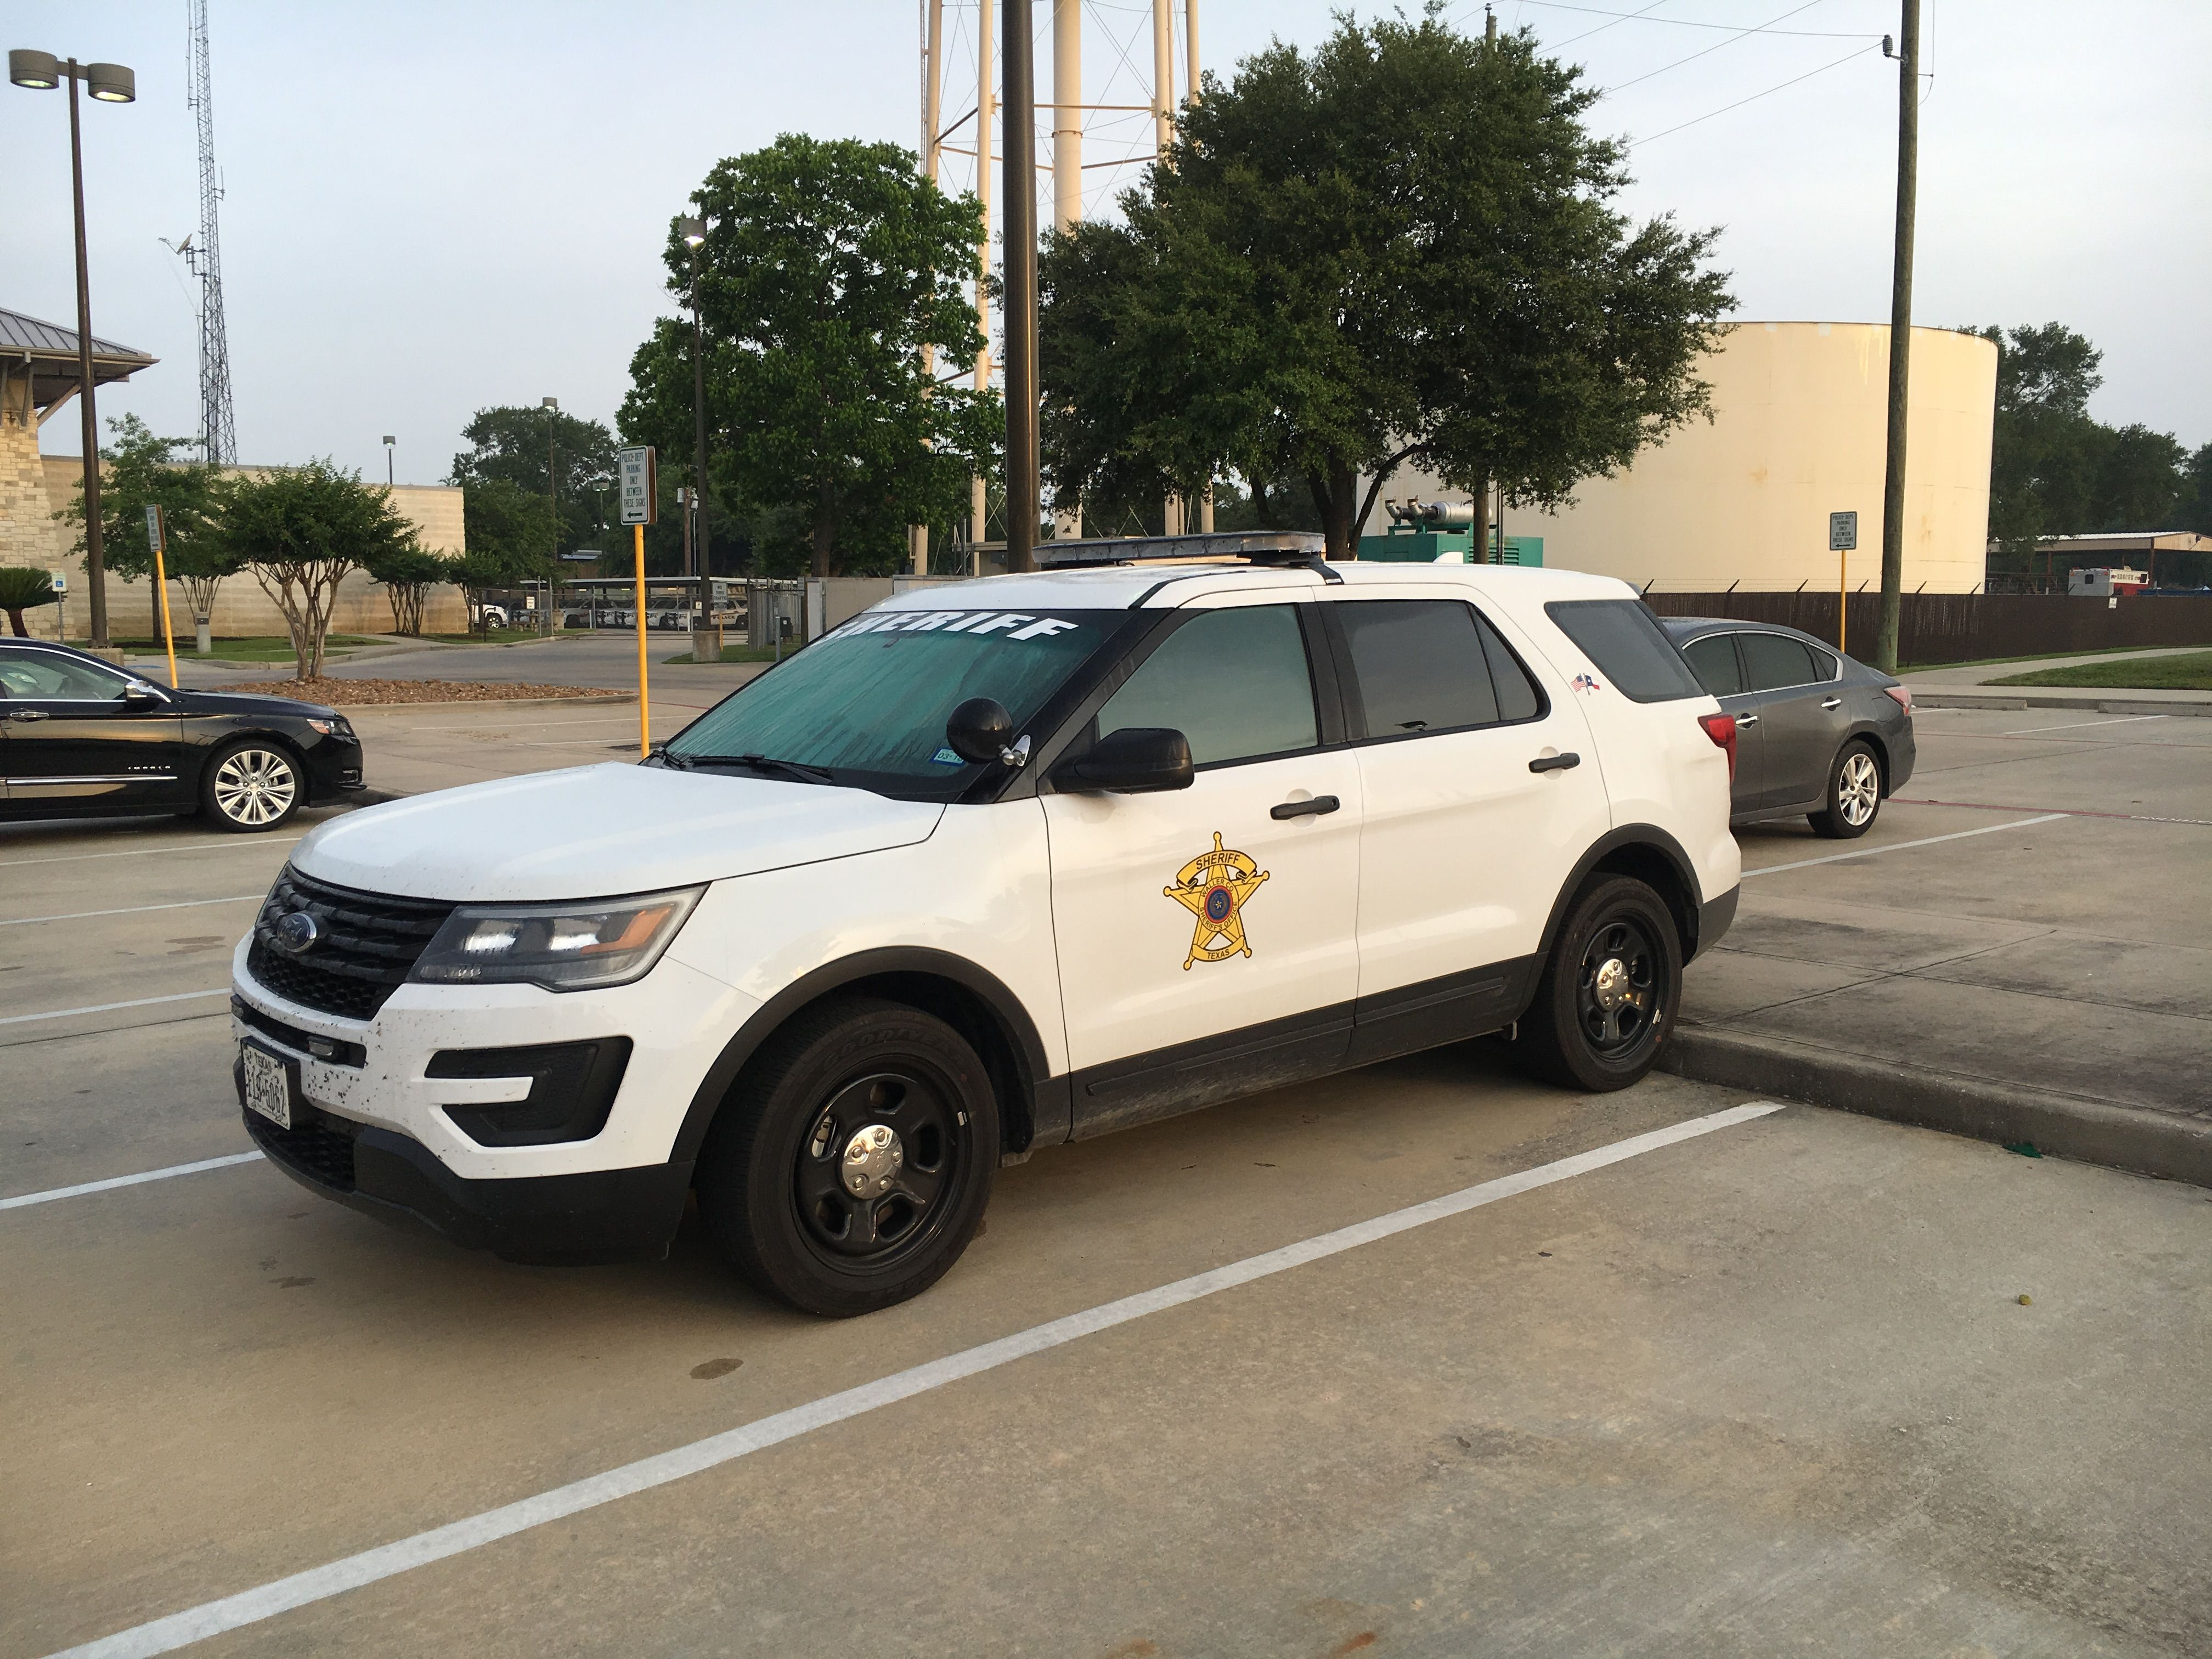 Waller County Sheriff S Office Ford Police Interceptor Suv Texas